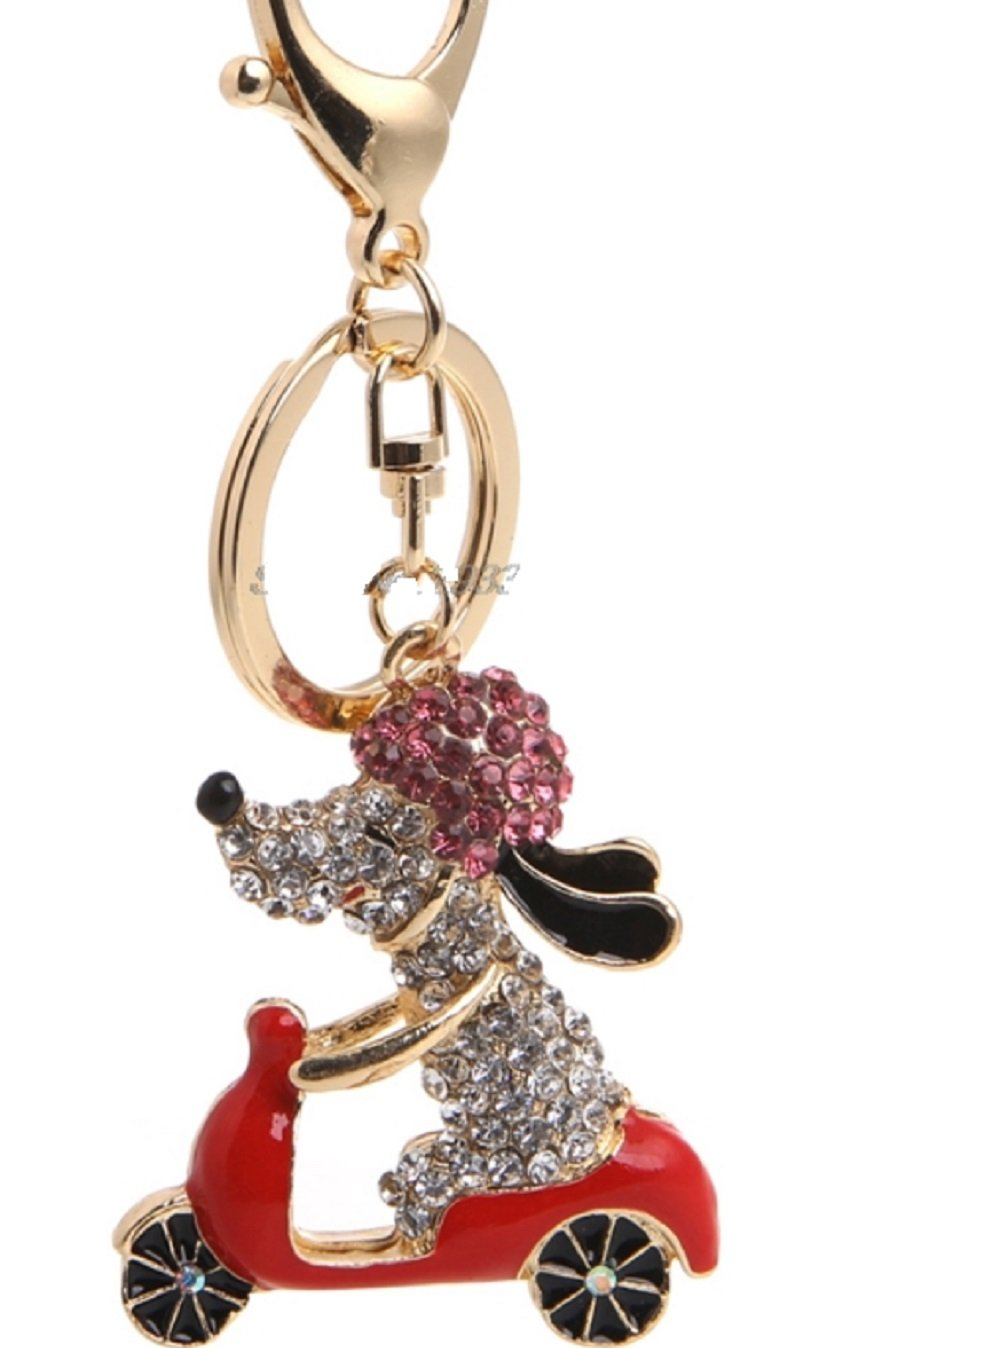 Snoopy DOG Riding Red Scooter Key Chain is Embellished with Crystal Rhinestones.Gold Ring & Lobster Claw.Perfect Gift for the Woman in your Life who loves Motorcycles or Riding on Yours:)